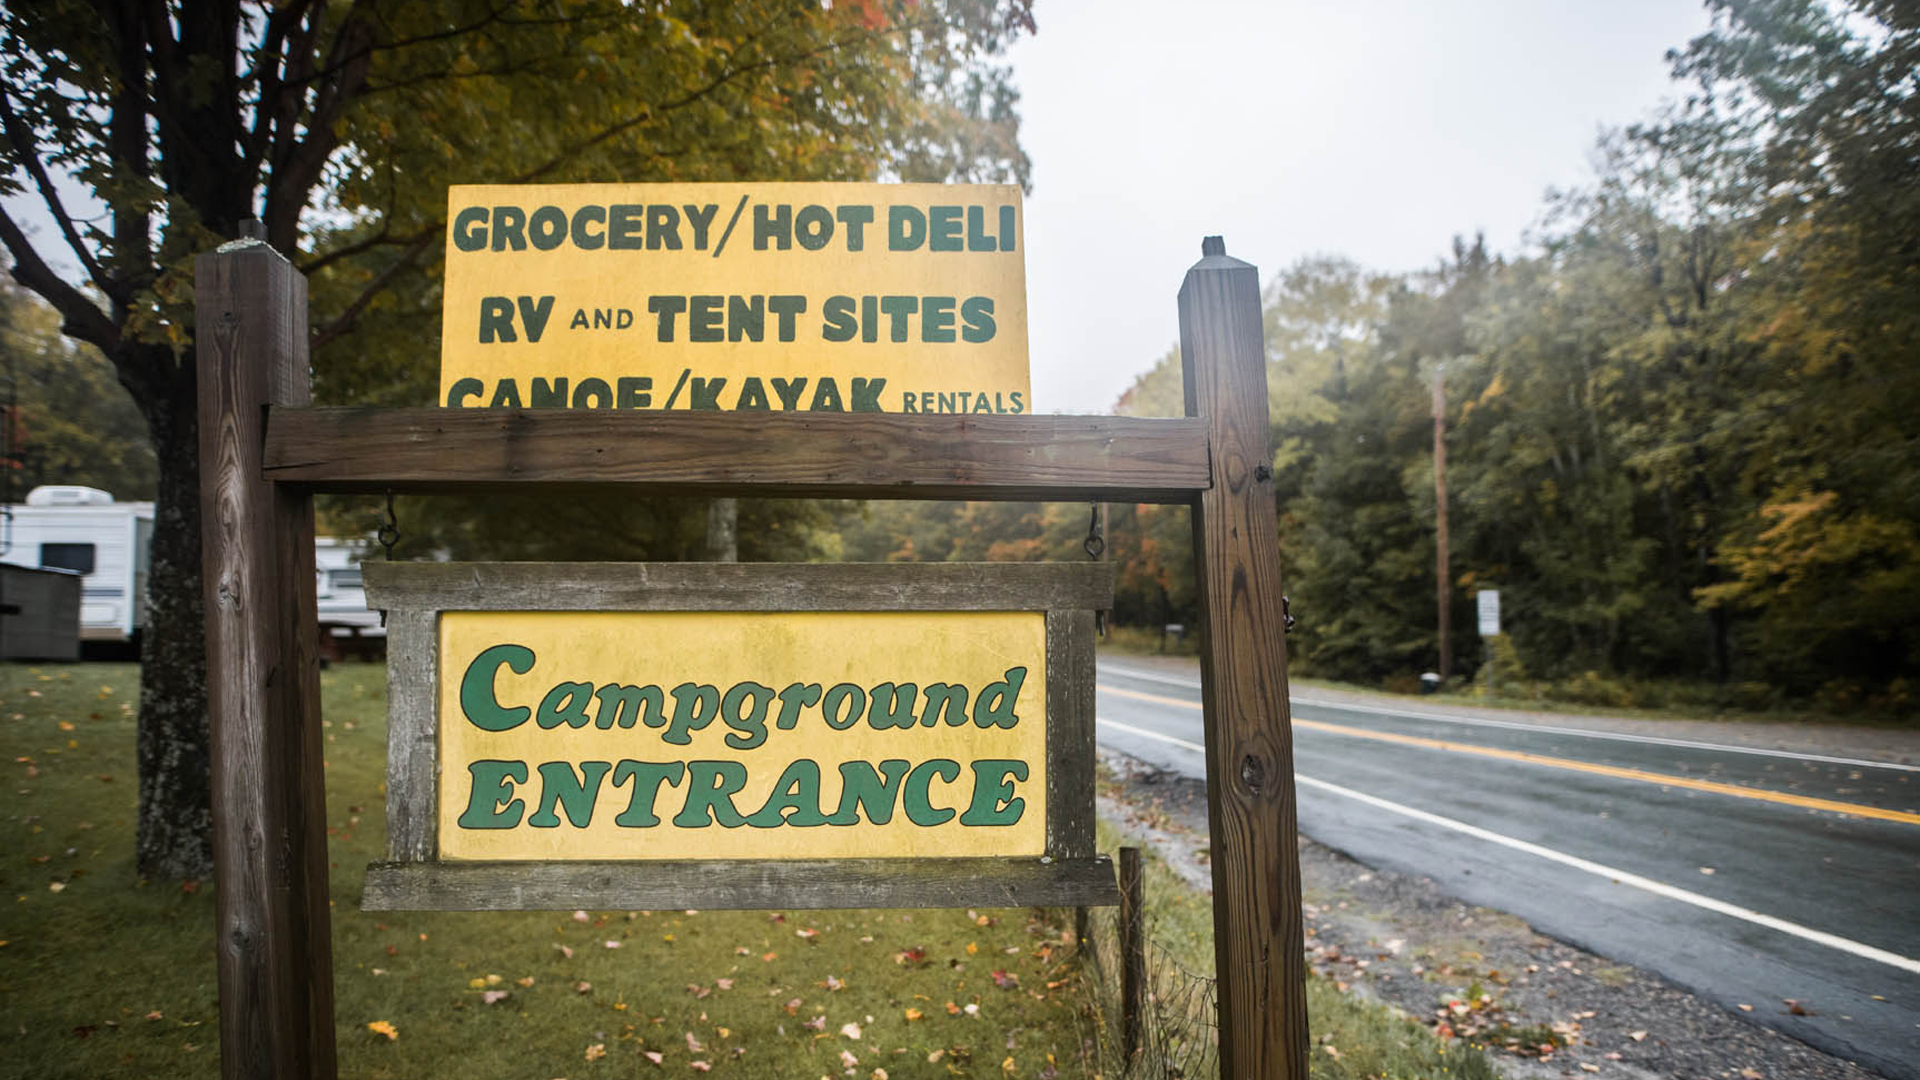 Airstream-Anatomy-of-a-Campground-campground-entrance